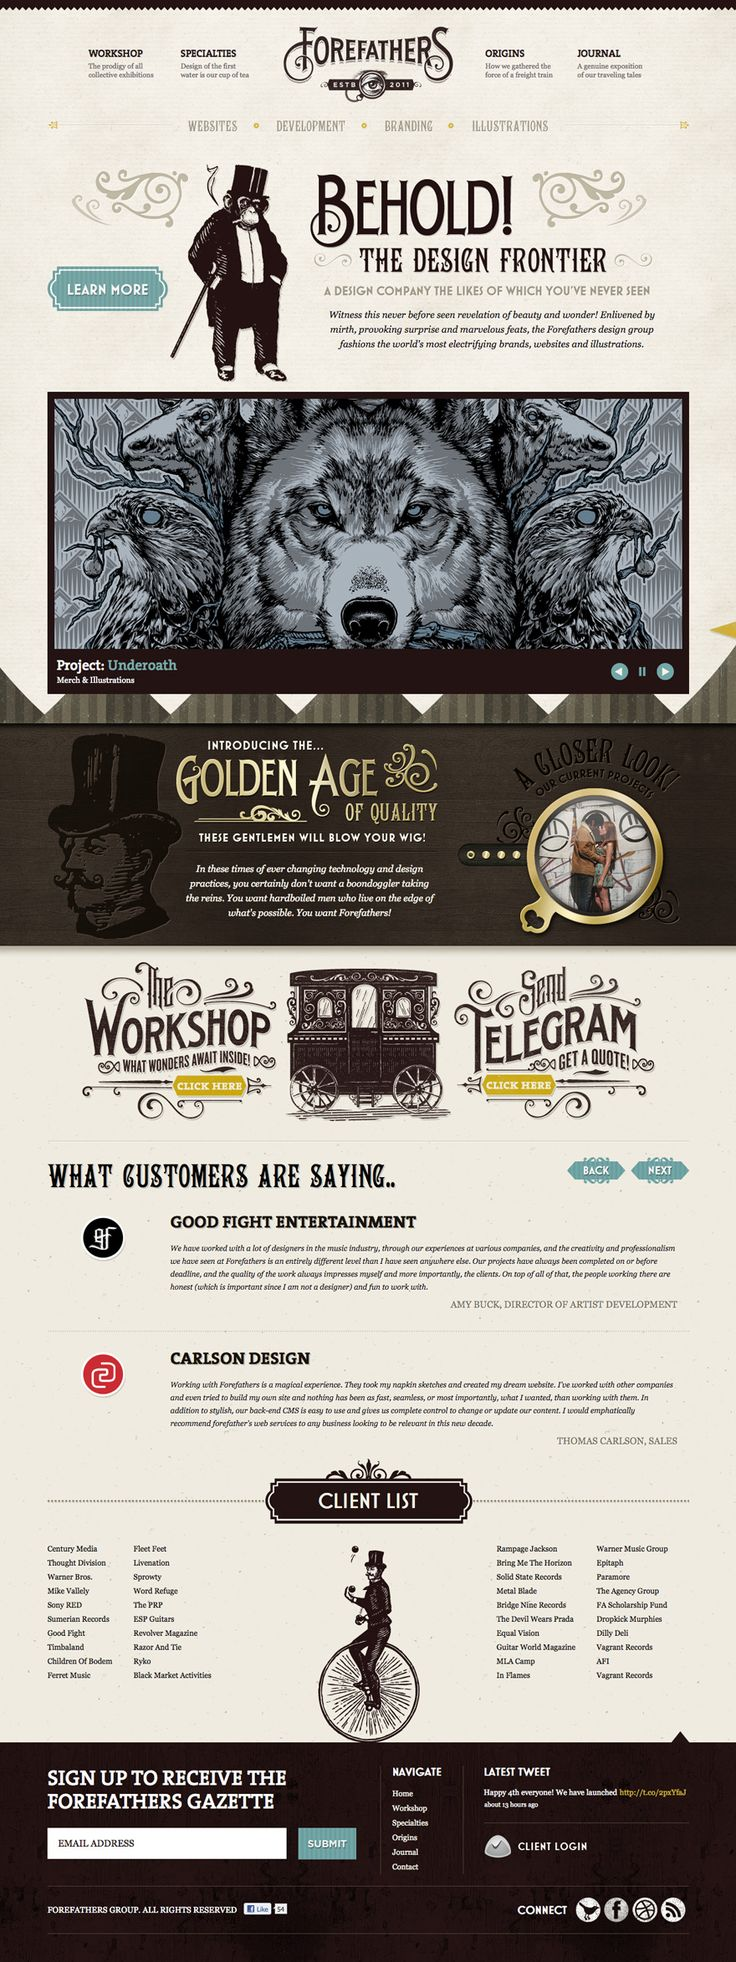 Unique Web Design, Forefathers #WebDesign #Design (http://www.pinterest.com/aldenchong/)